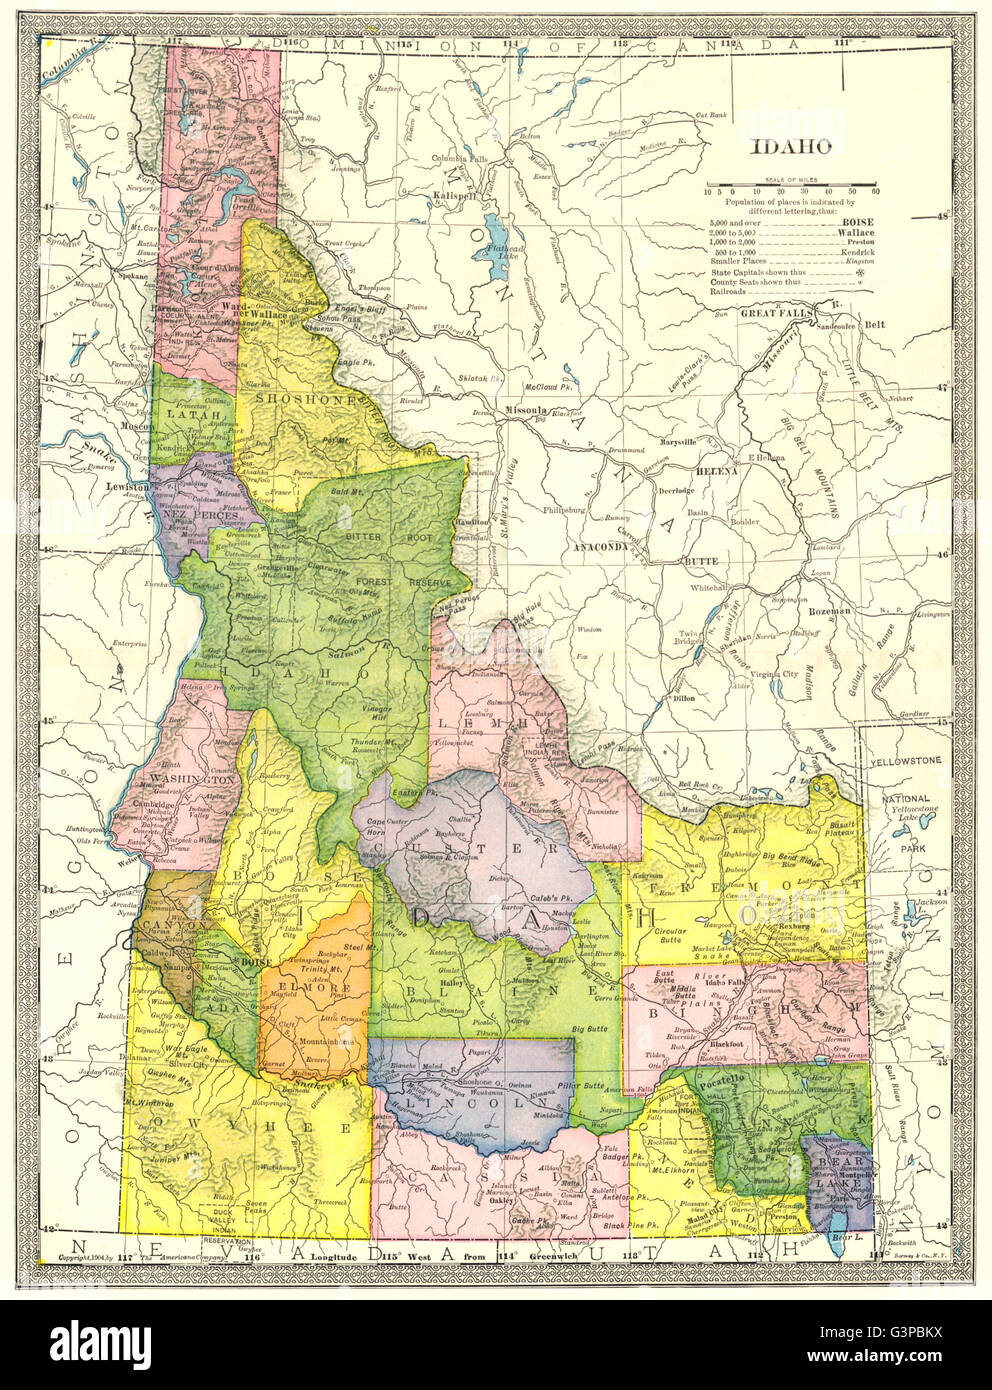 IDAHO state map. Counties, 1907 Stock Photo: 105598302 - Alamy